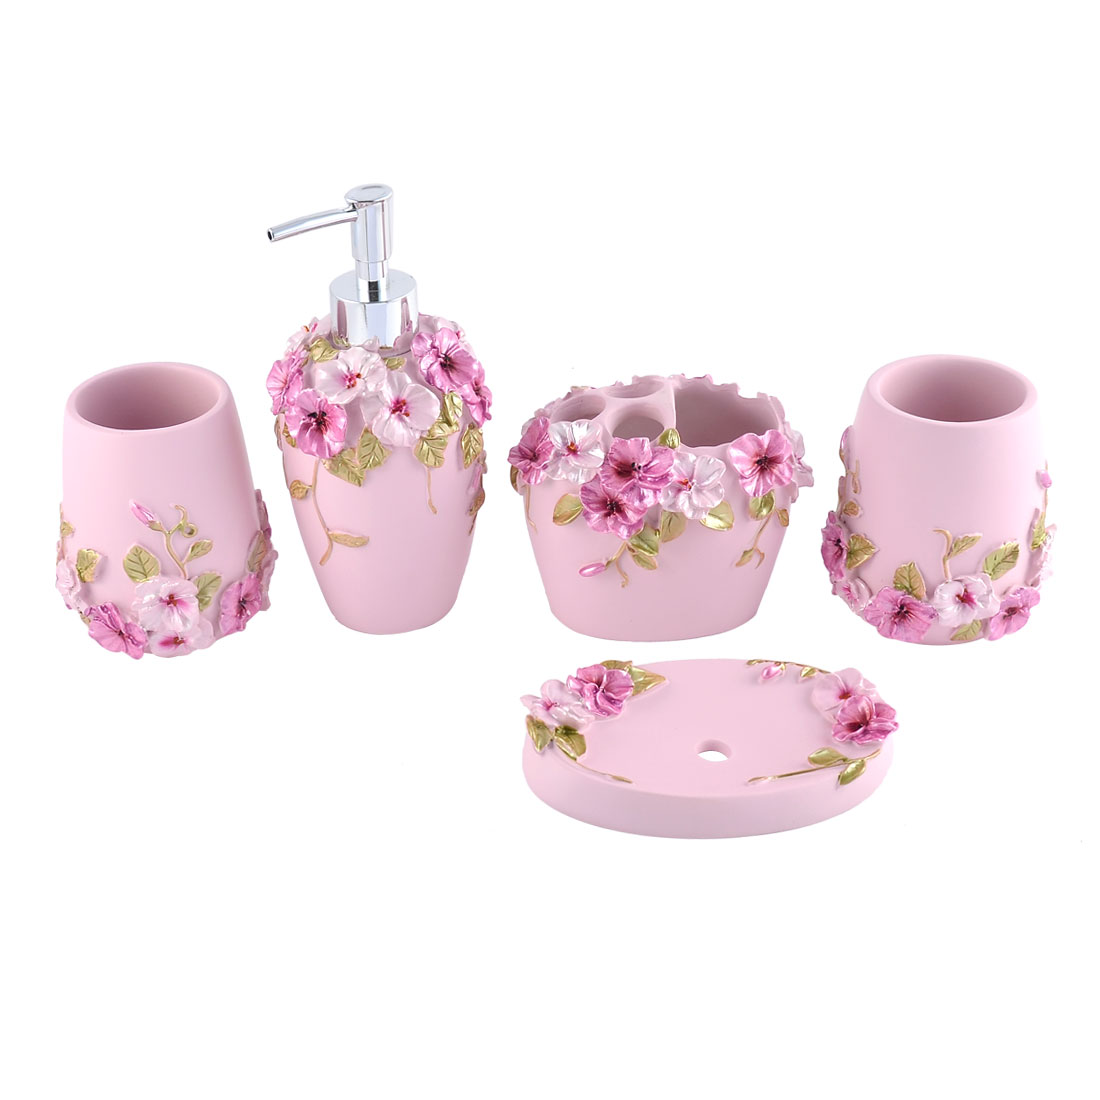 Home Bath Accessory Set Soap Dispenser Toothbrush Holder Tumbler Soap Dish 5 in 1